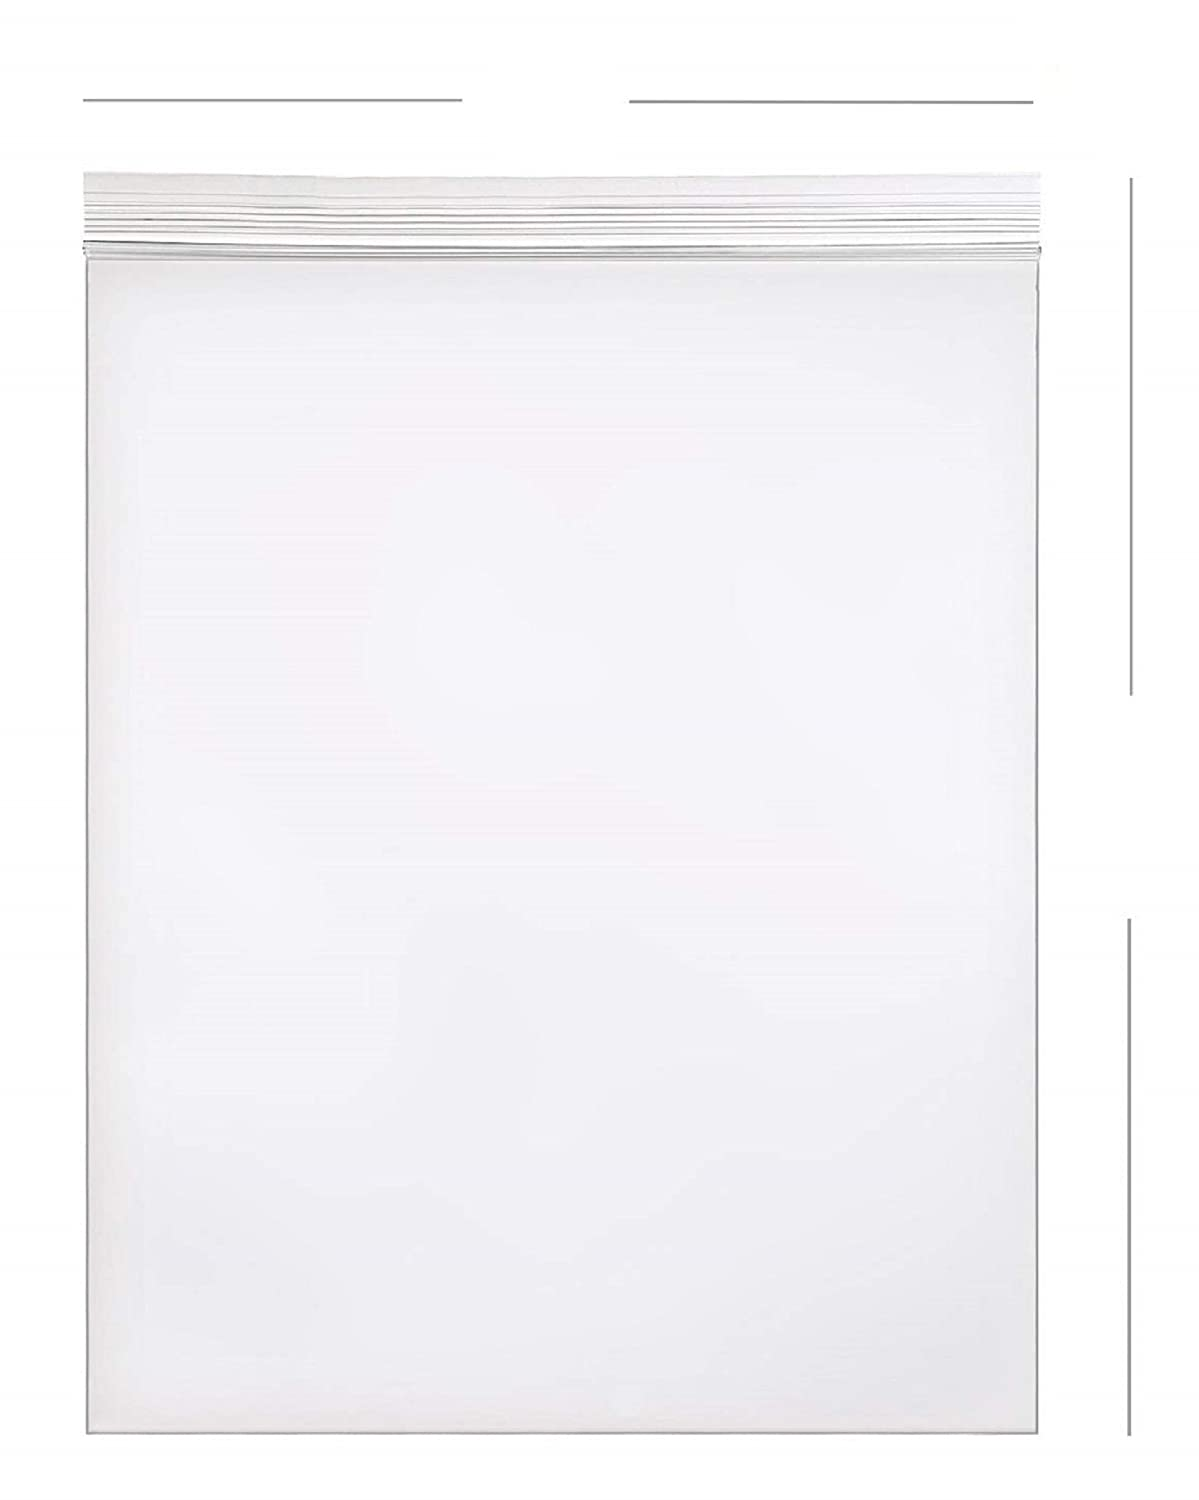 AM-Ink 50-Pcs 14x20 Poly Self Sealing Storage Reclosable Resealable Clear Plastic Bags 2 MIL